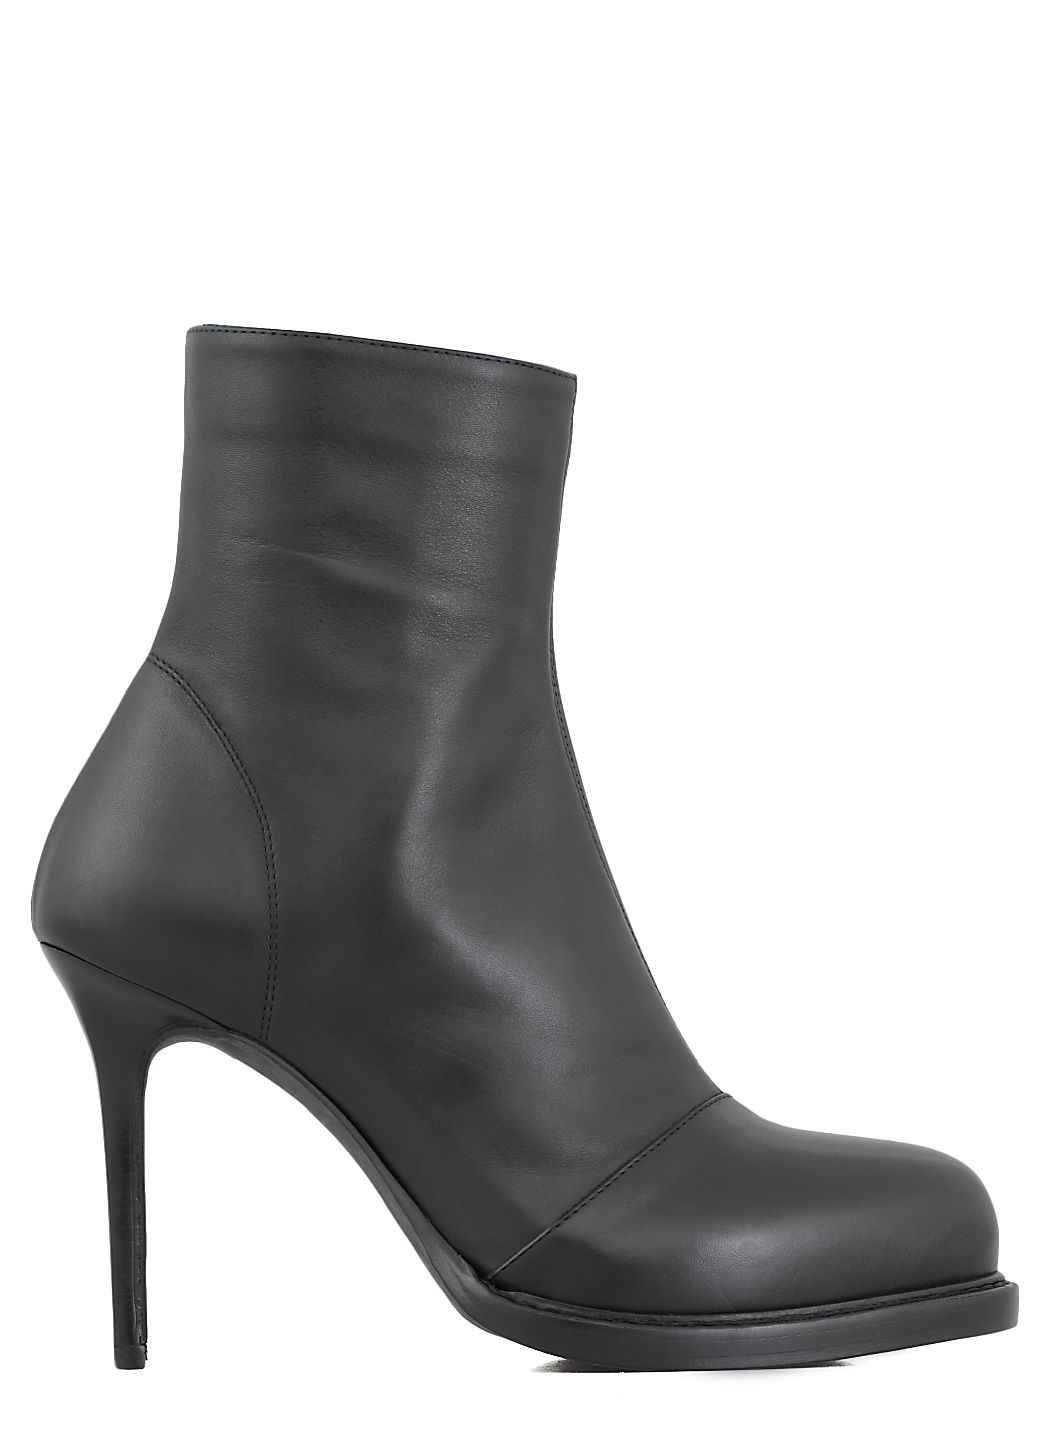 High-heel ankle lenght boots